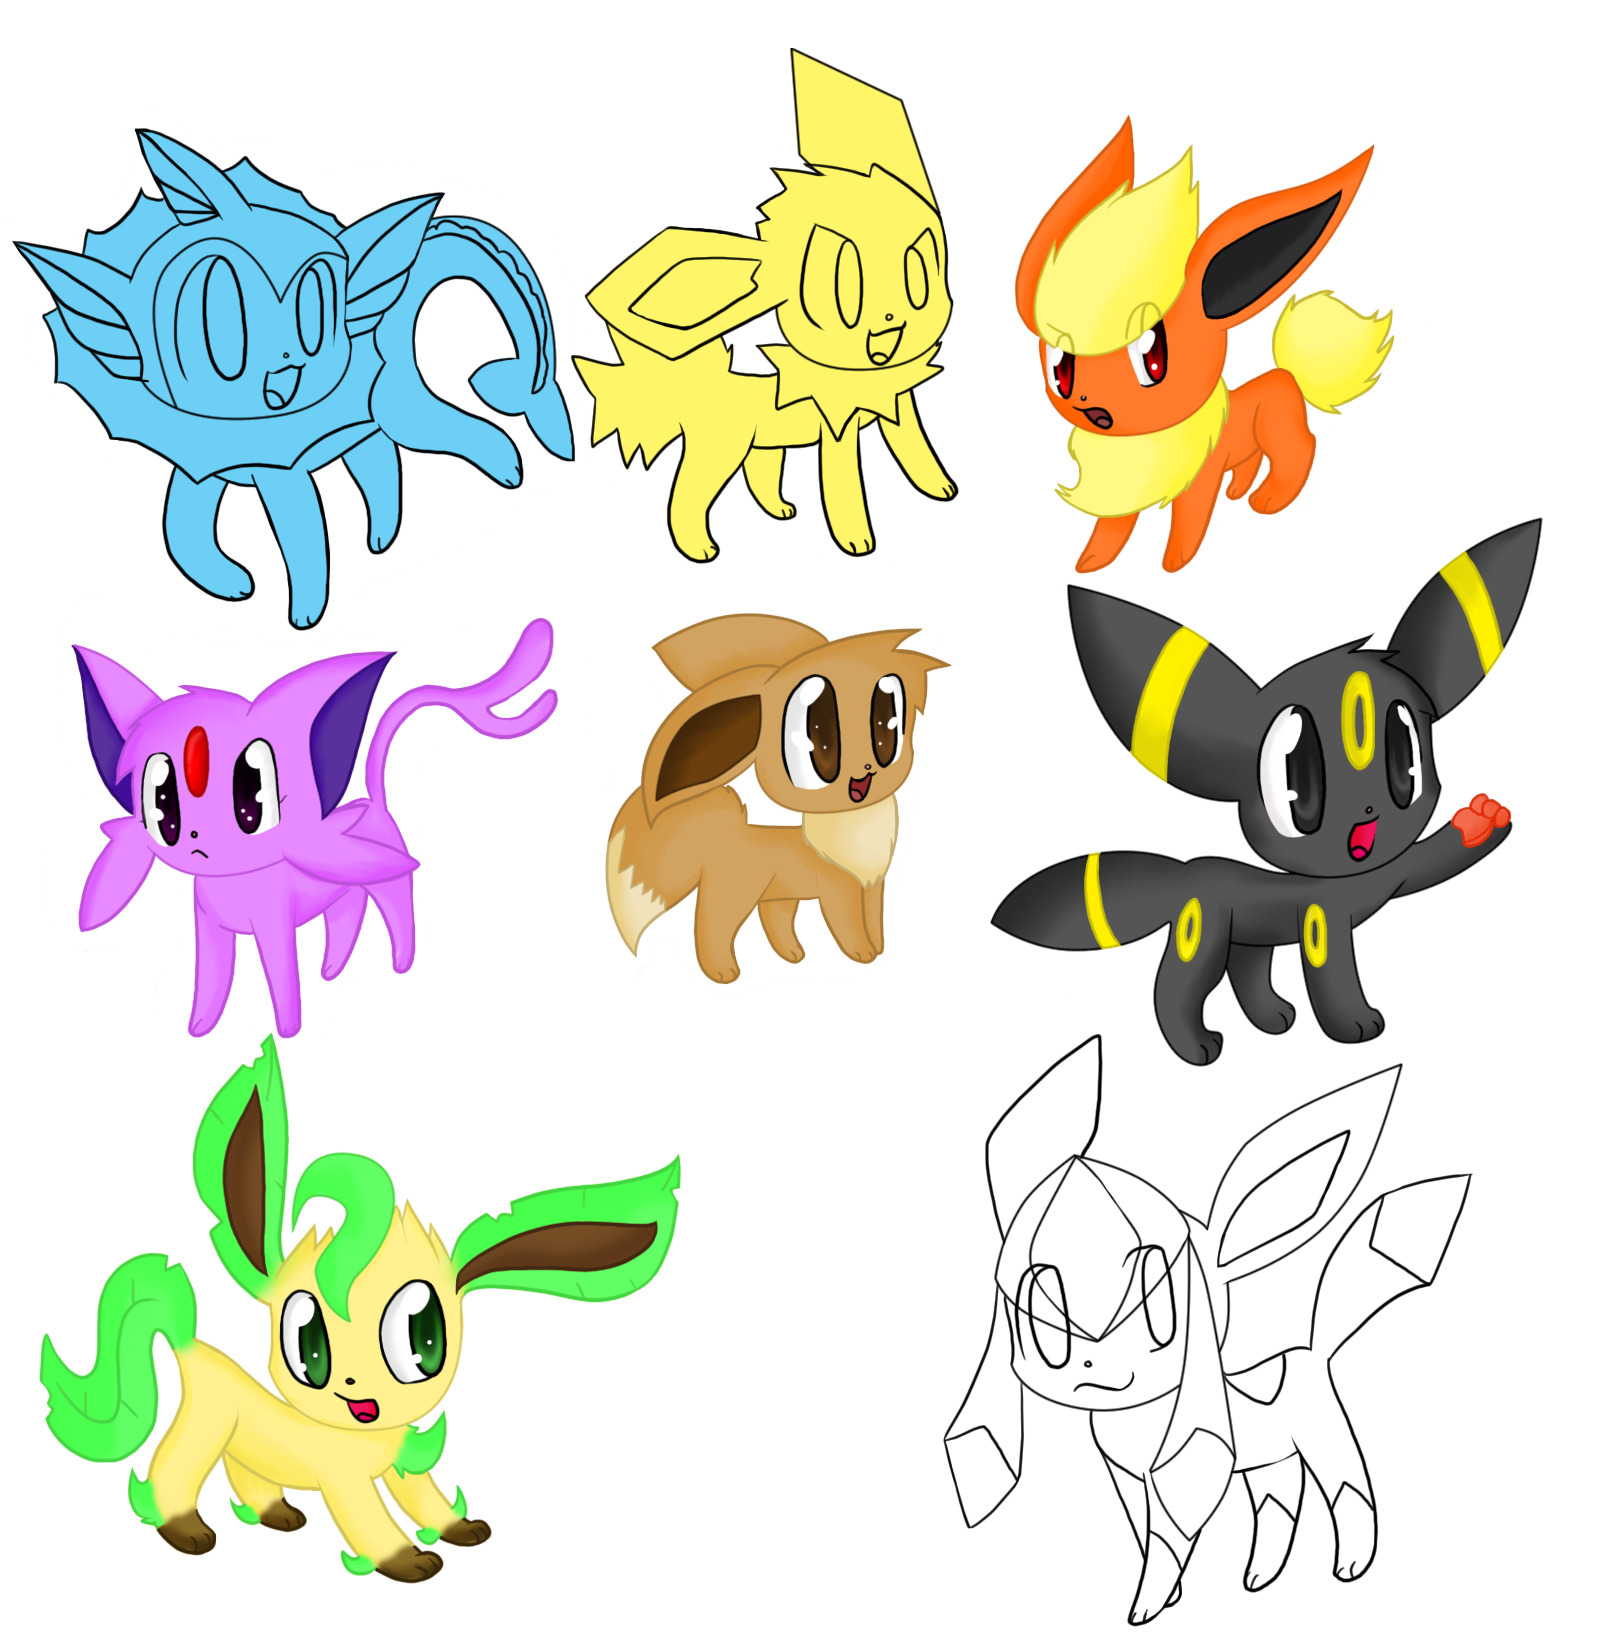 Chibi Pokemon Human Eevee Eveloutions Images | Pokemon Images